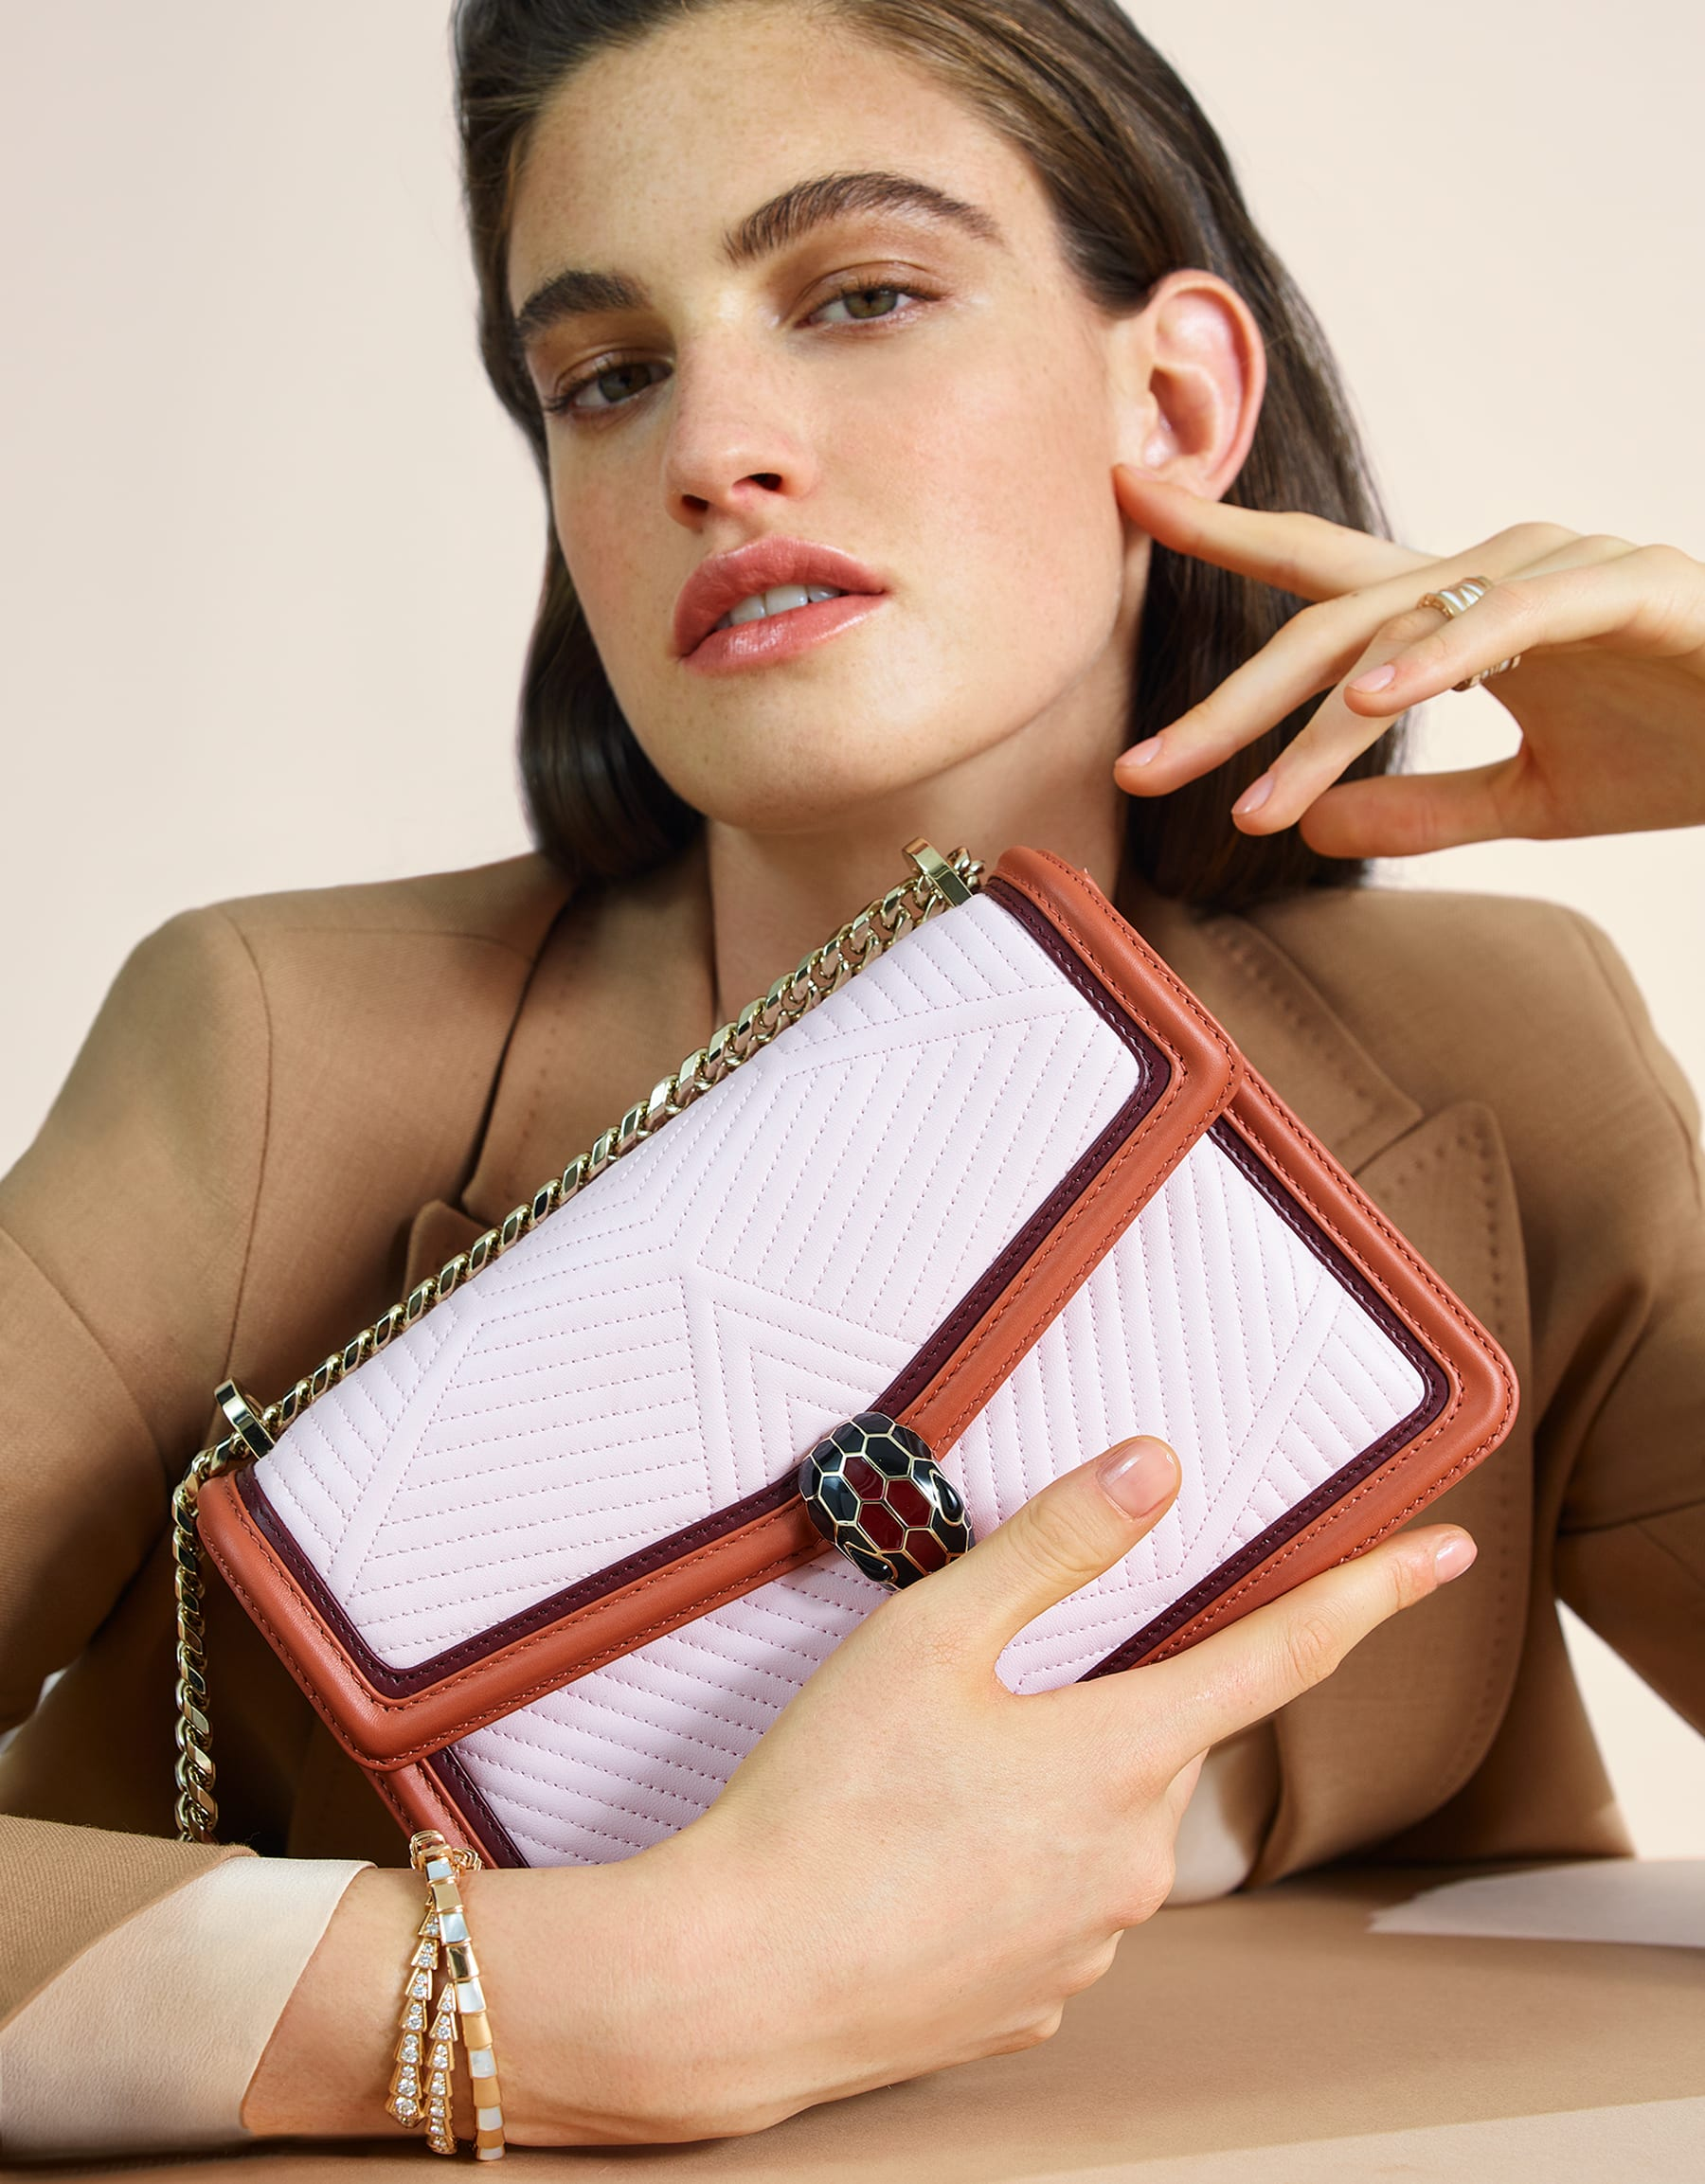 Serpenti Diamond Blast shoulder bag with rosa di francia quilted nappa leather body and imperial topaz and Roman garnet calf leather frames. Iconic snakehead closure in light gold plated brass embellished with Roman garnet and black enamel and black onyx eyes. 288829 image 5